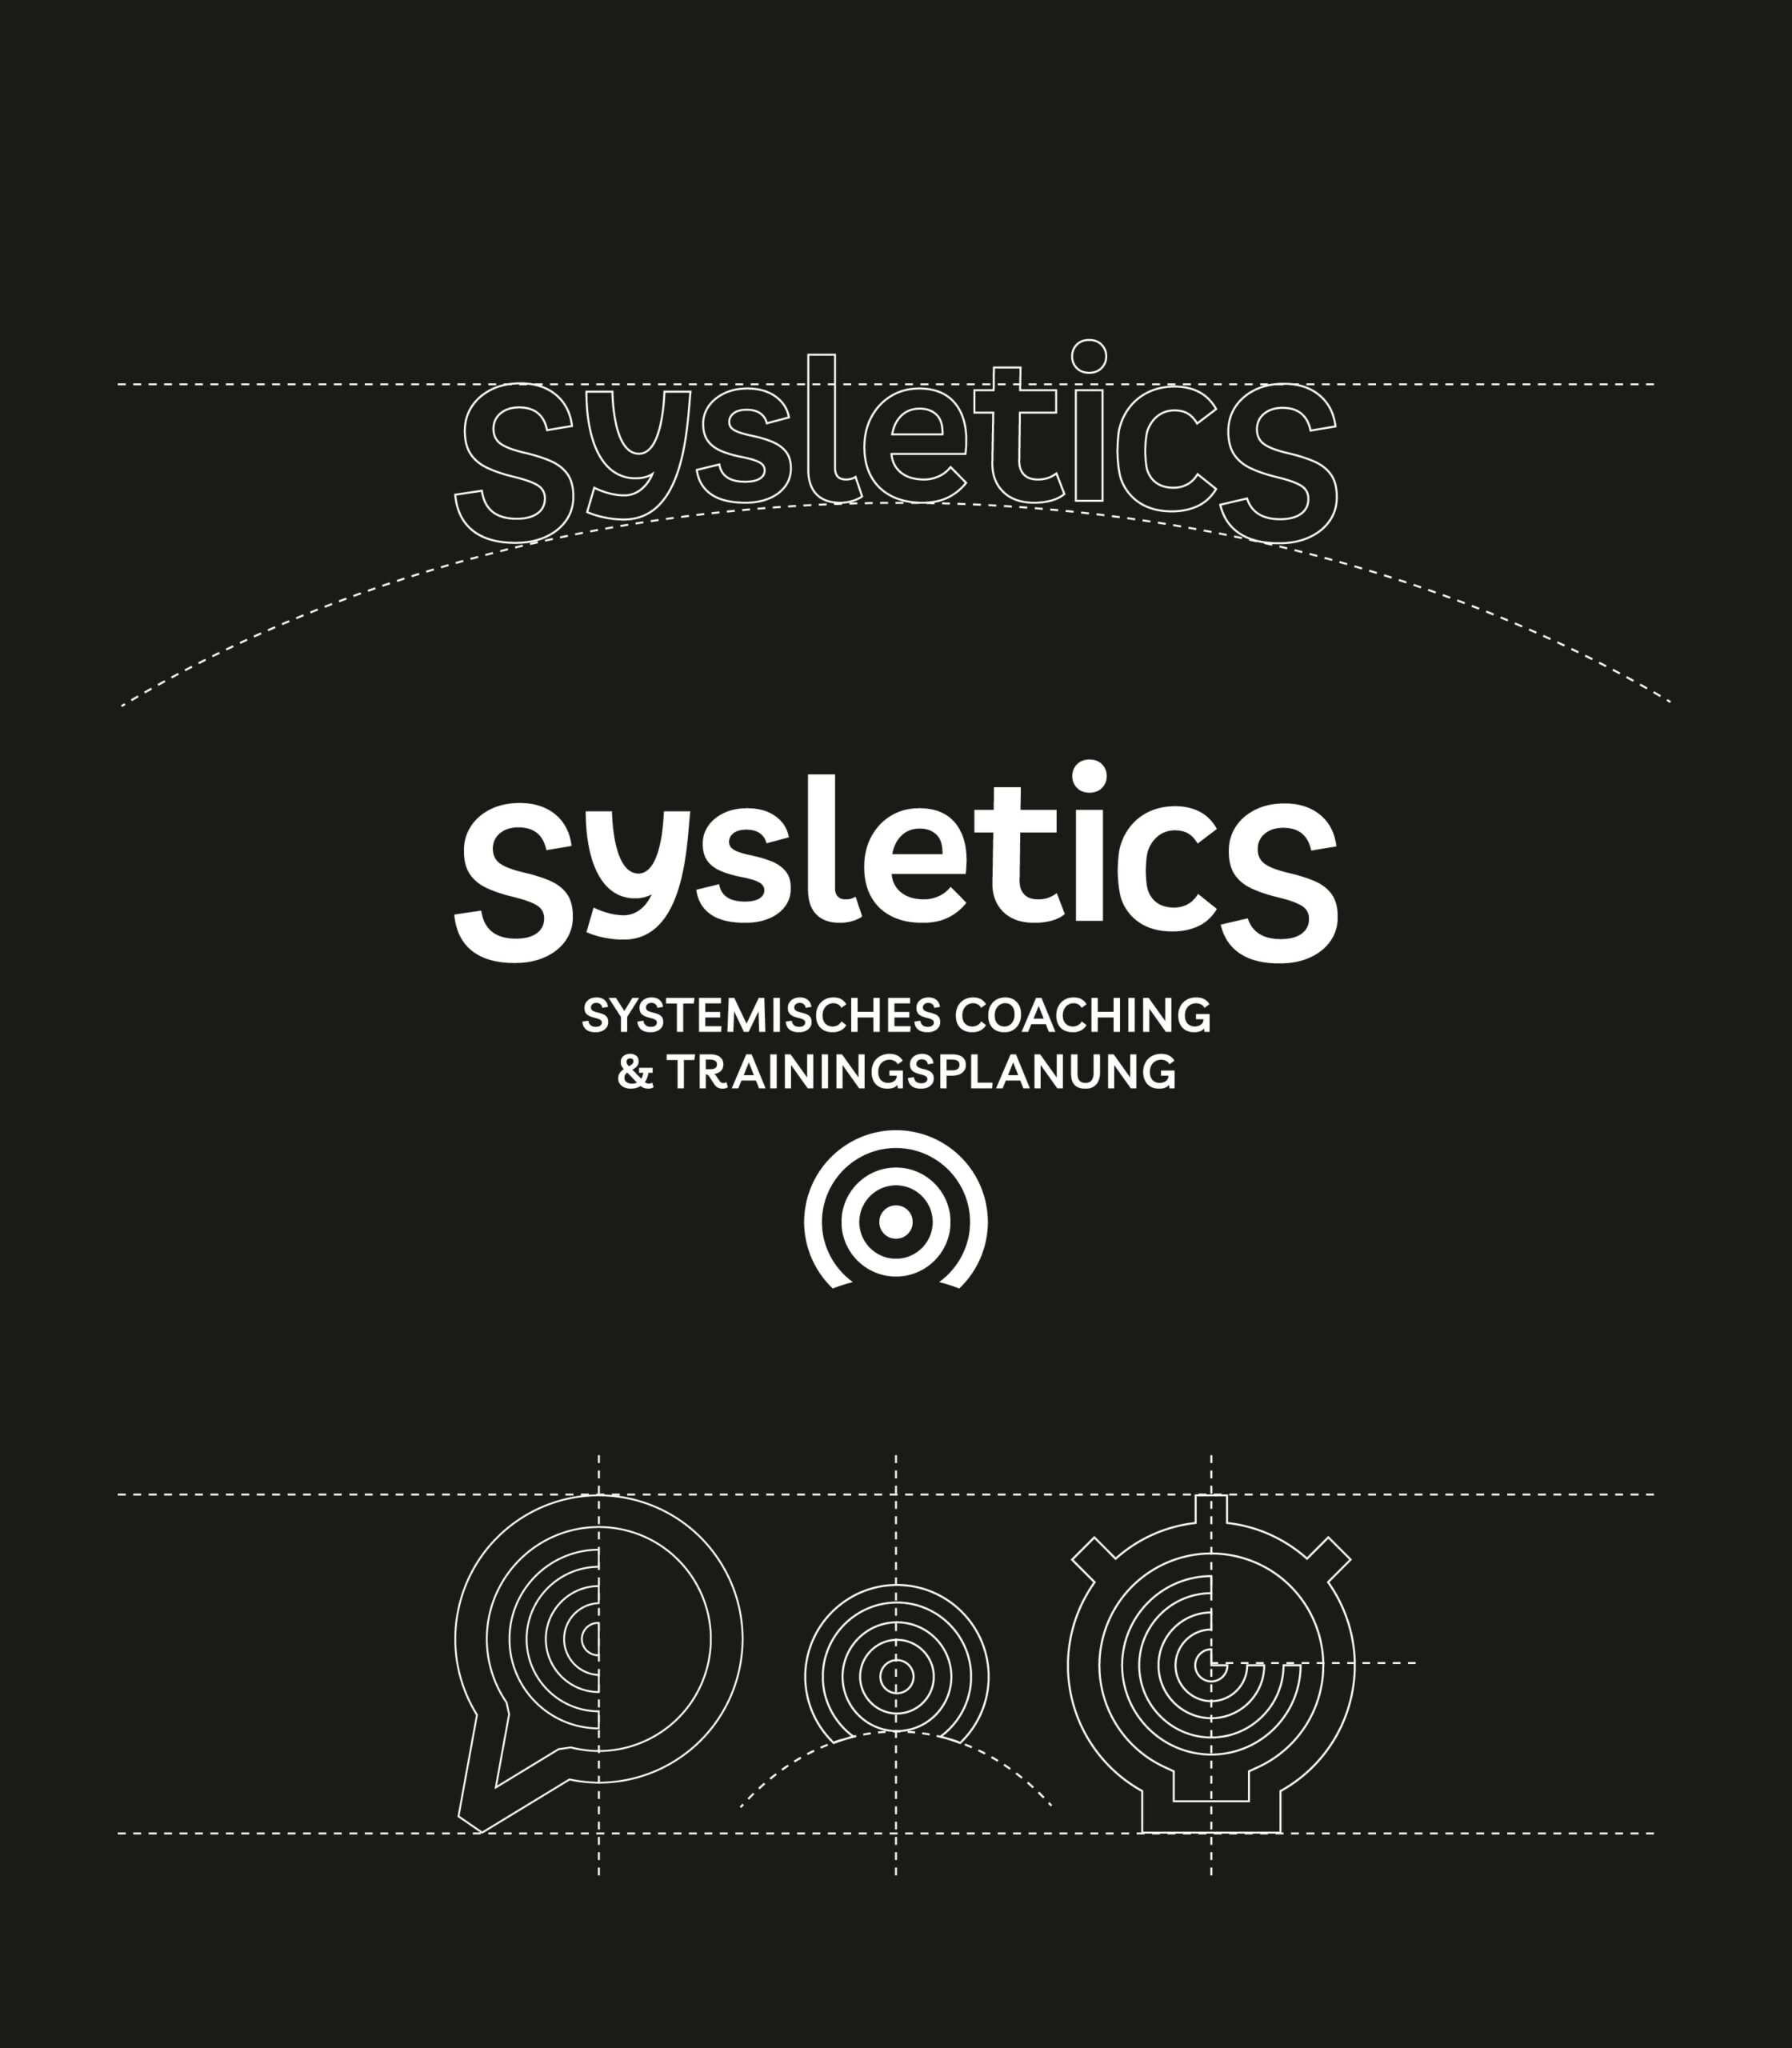 © gobasil.com | Sysletics Naming and Branding